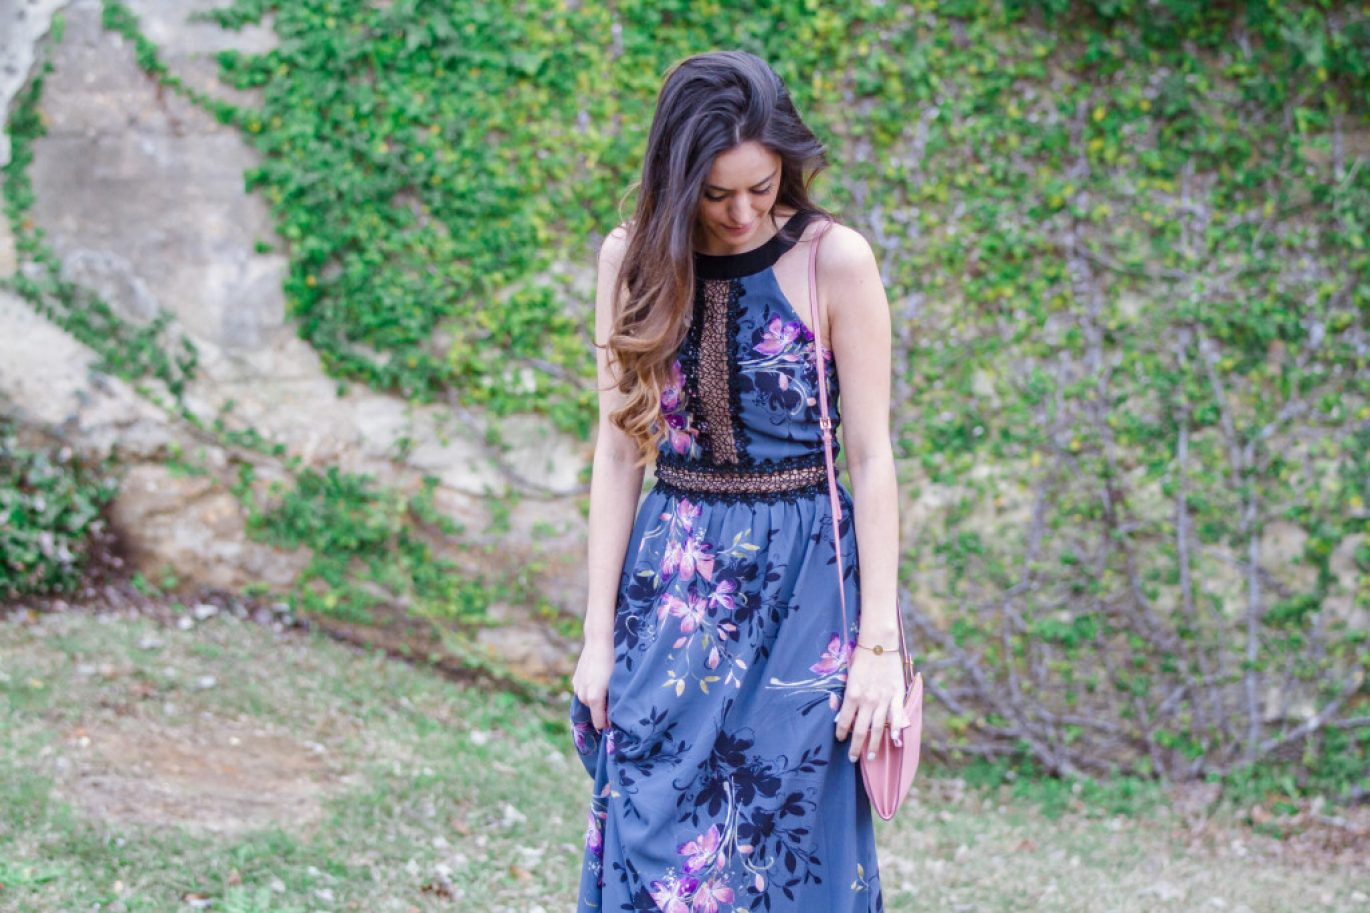 aerosoles glossary wedge sandals, LITTLE MISTRESS FLORAL PRINT AND LACE MAXI DRESS, winter to spring transitional outfit, early spring outfit ideas, tom ford pink cross body bag